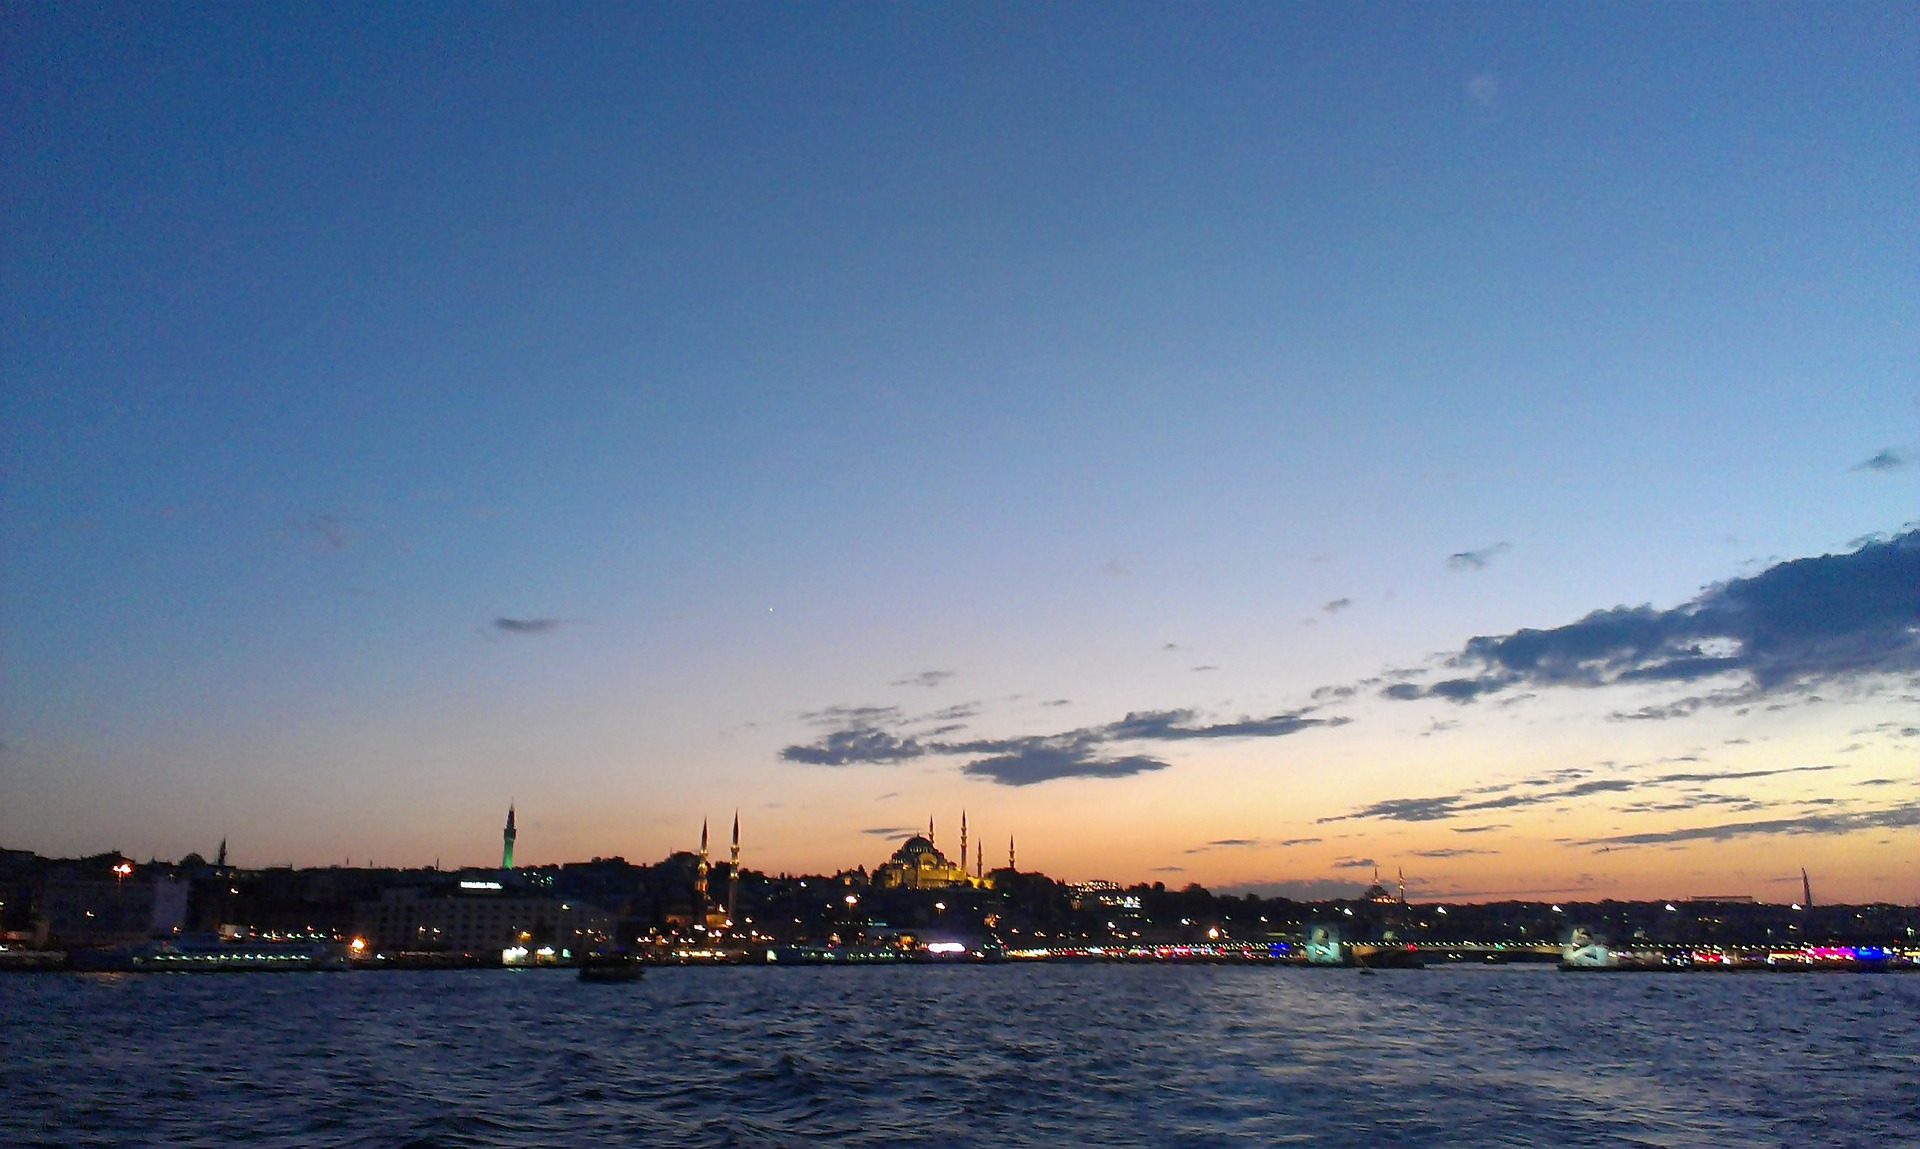 Sunset over the the Bosphorus, Istanbul, Turkey